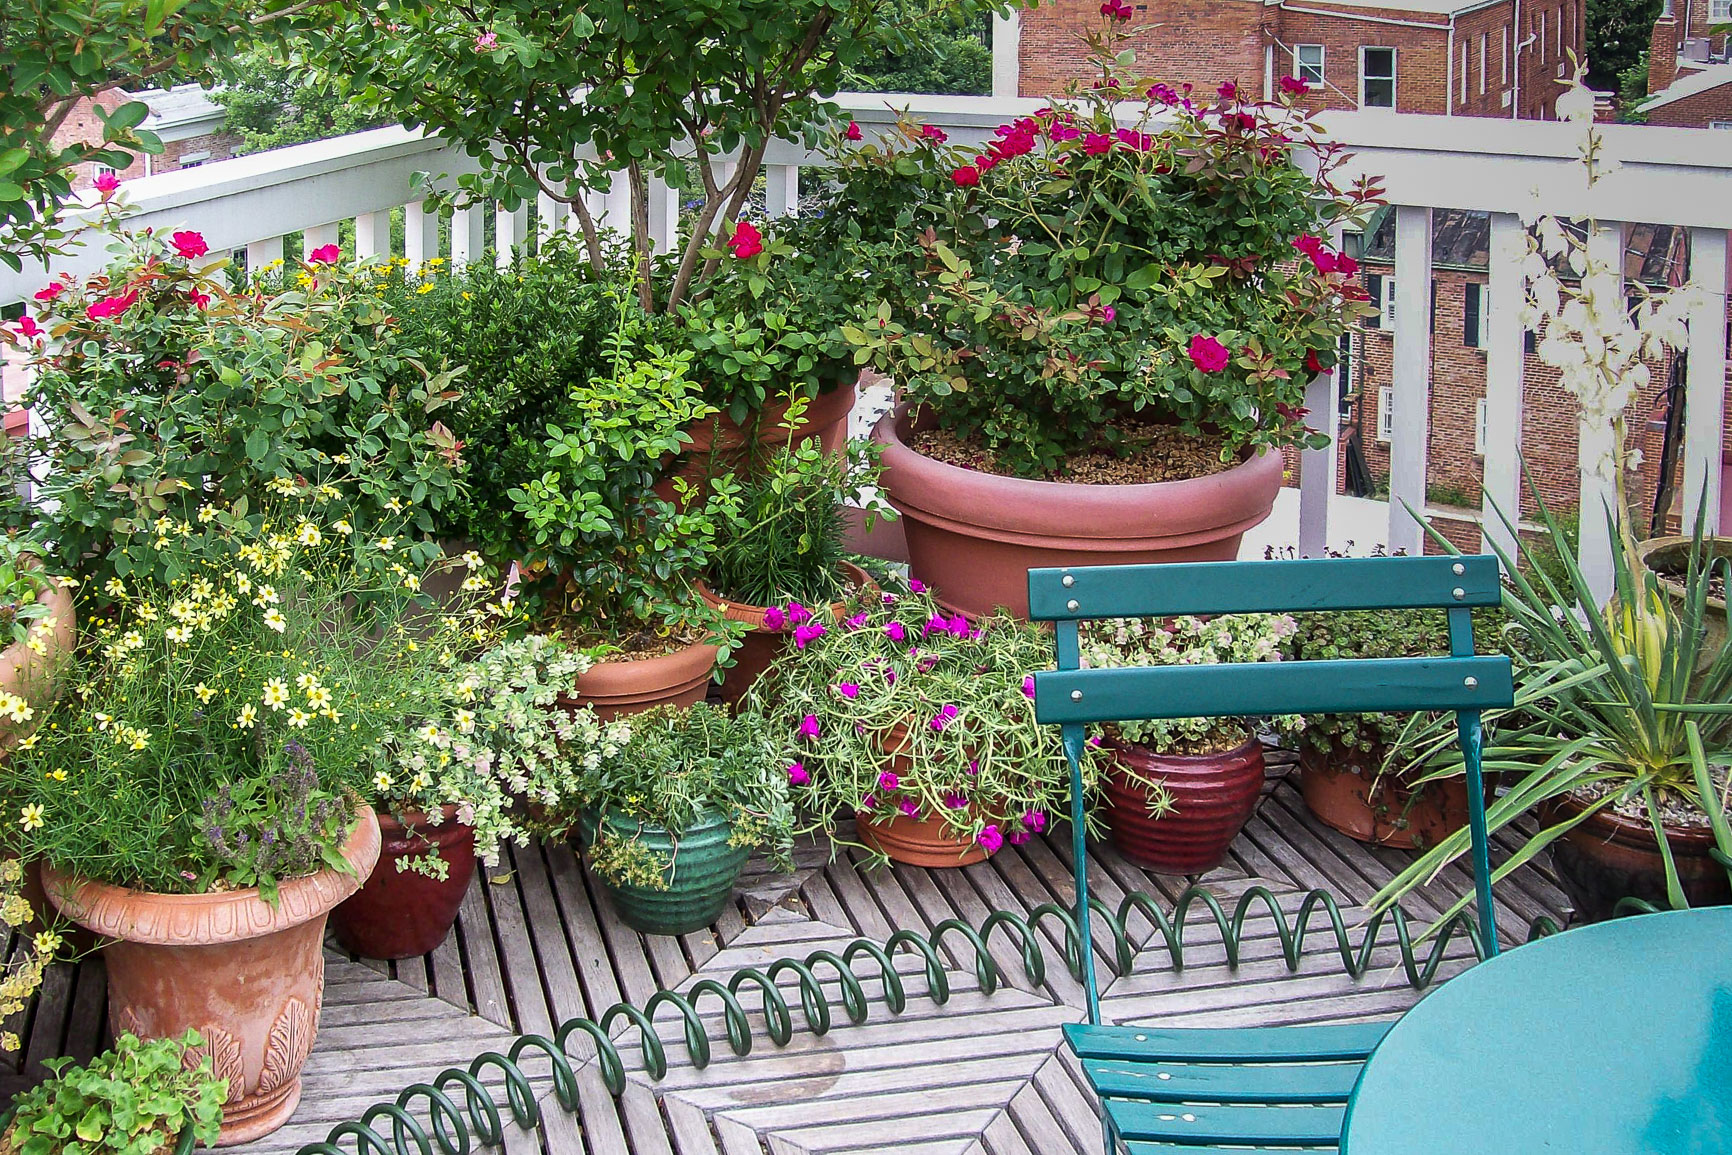 This 'garden' is all about containers! : Rooftop and Balcony Gardens : CITYSCAPES® Landscaping Inc.